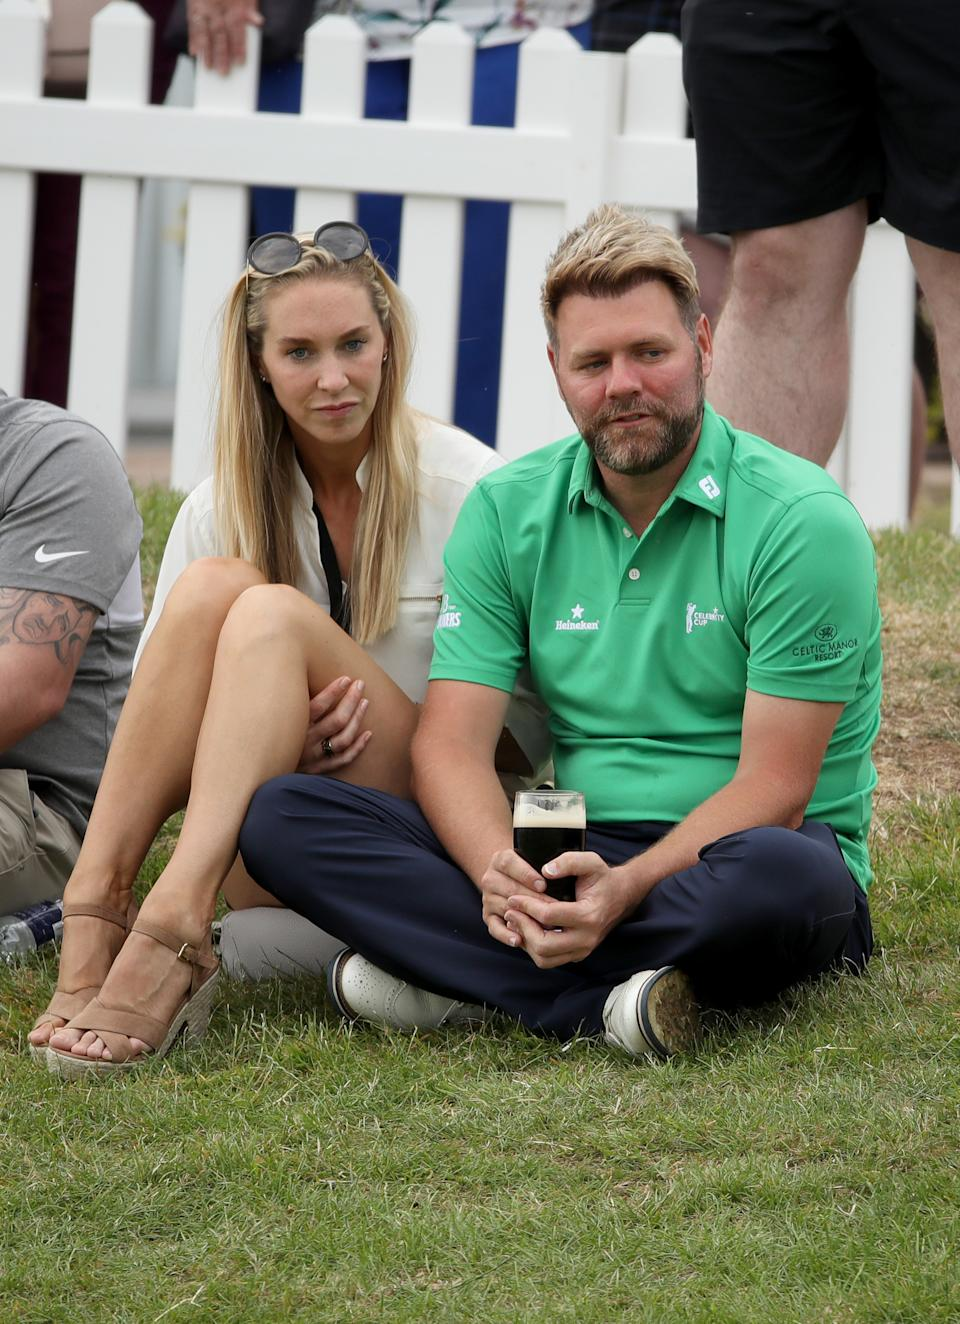 NEWPORT, WALES - JULY 13: Brian McFadden and Danielle Parkinson during The Celebrity Cup 2019 at Celtic Manor Resort on July 13, 2019 in Newport, Wales. (Photo by Mike Marsland/WireImage)